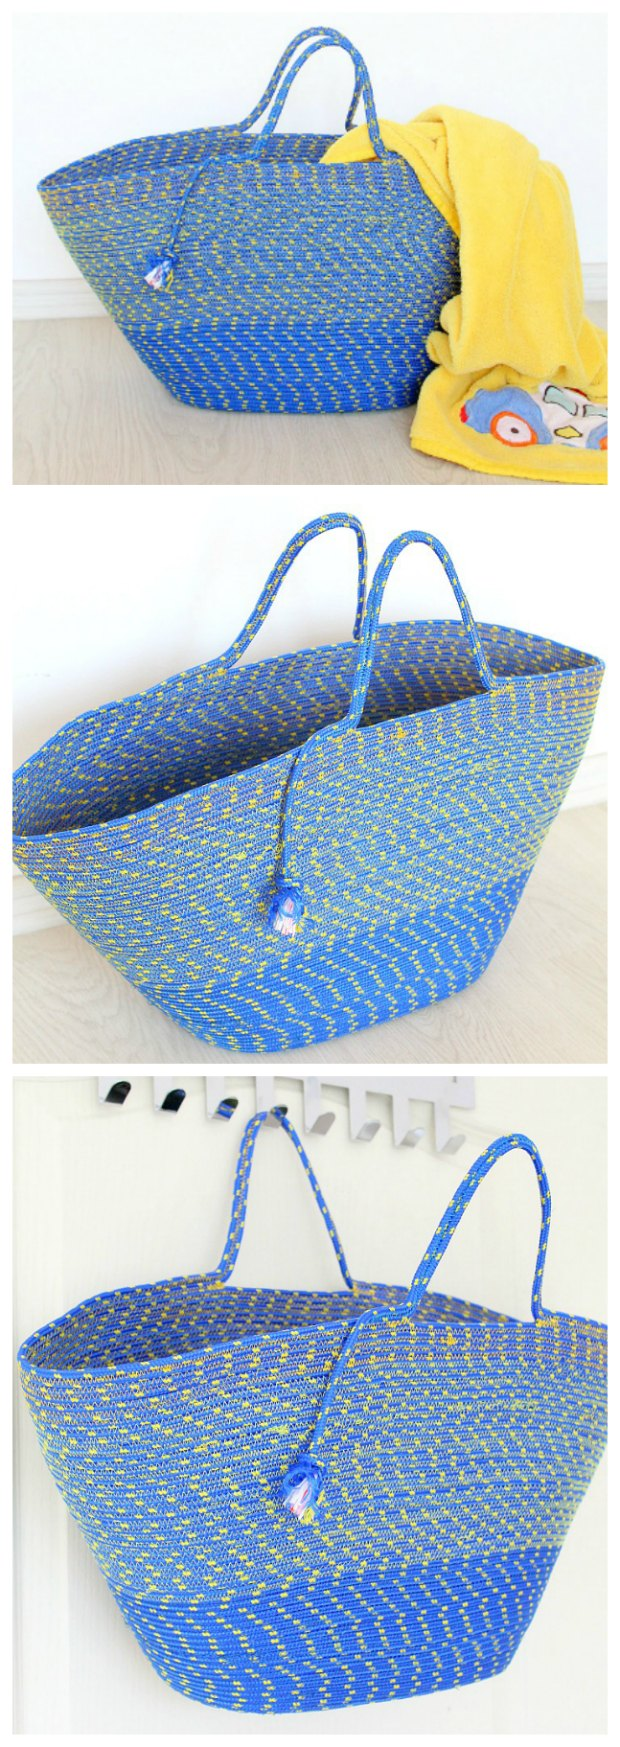 I couldn't believe it when I saw how this bag was made - just from a piece of rope! It's ingenious. Makes great beach and grocery bags. I'm making one for my mom too.